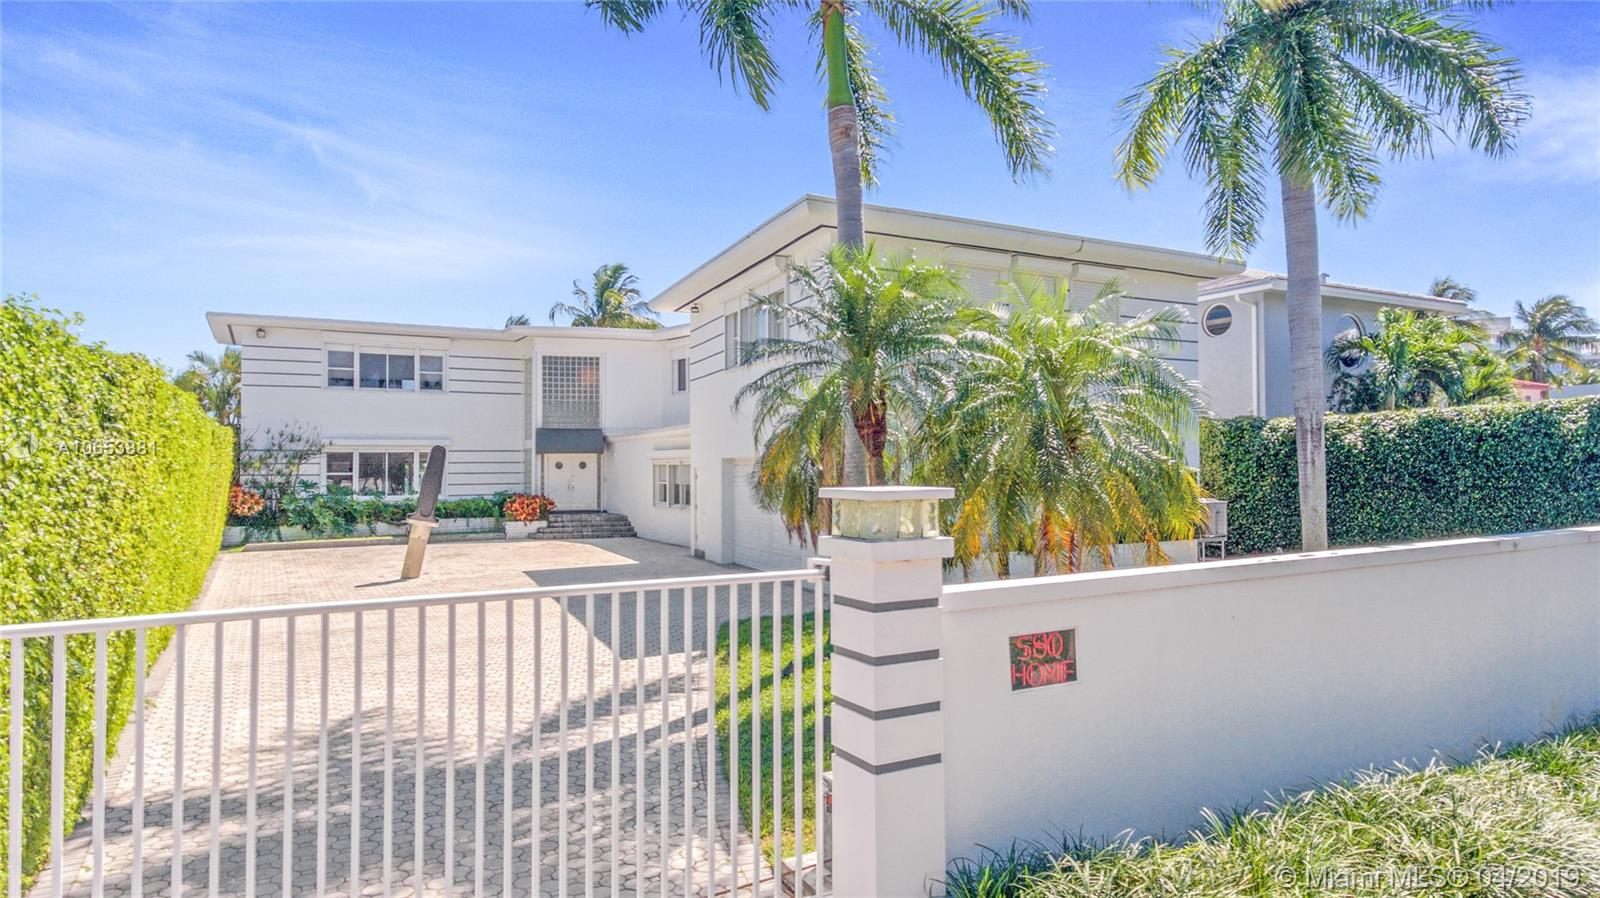 Lake View - 580 Lakeview Dr, Miami Beach, FL 33140